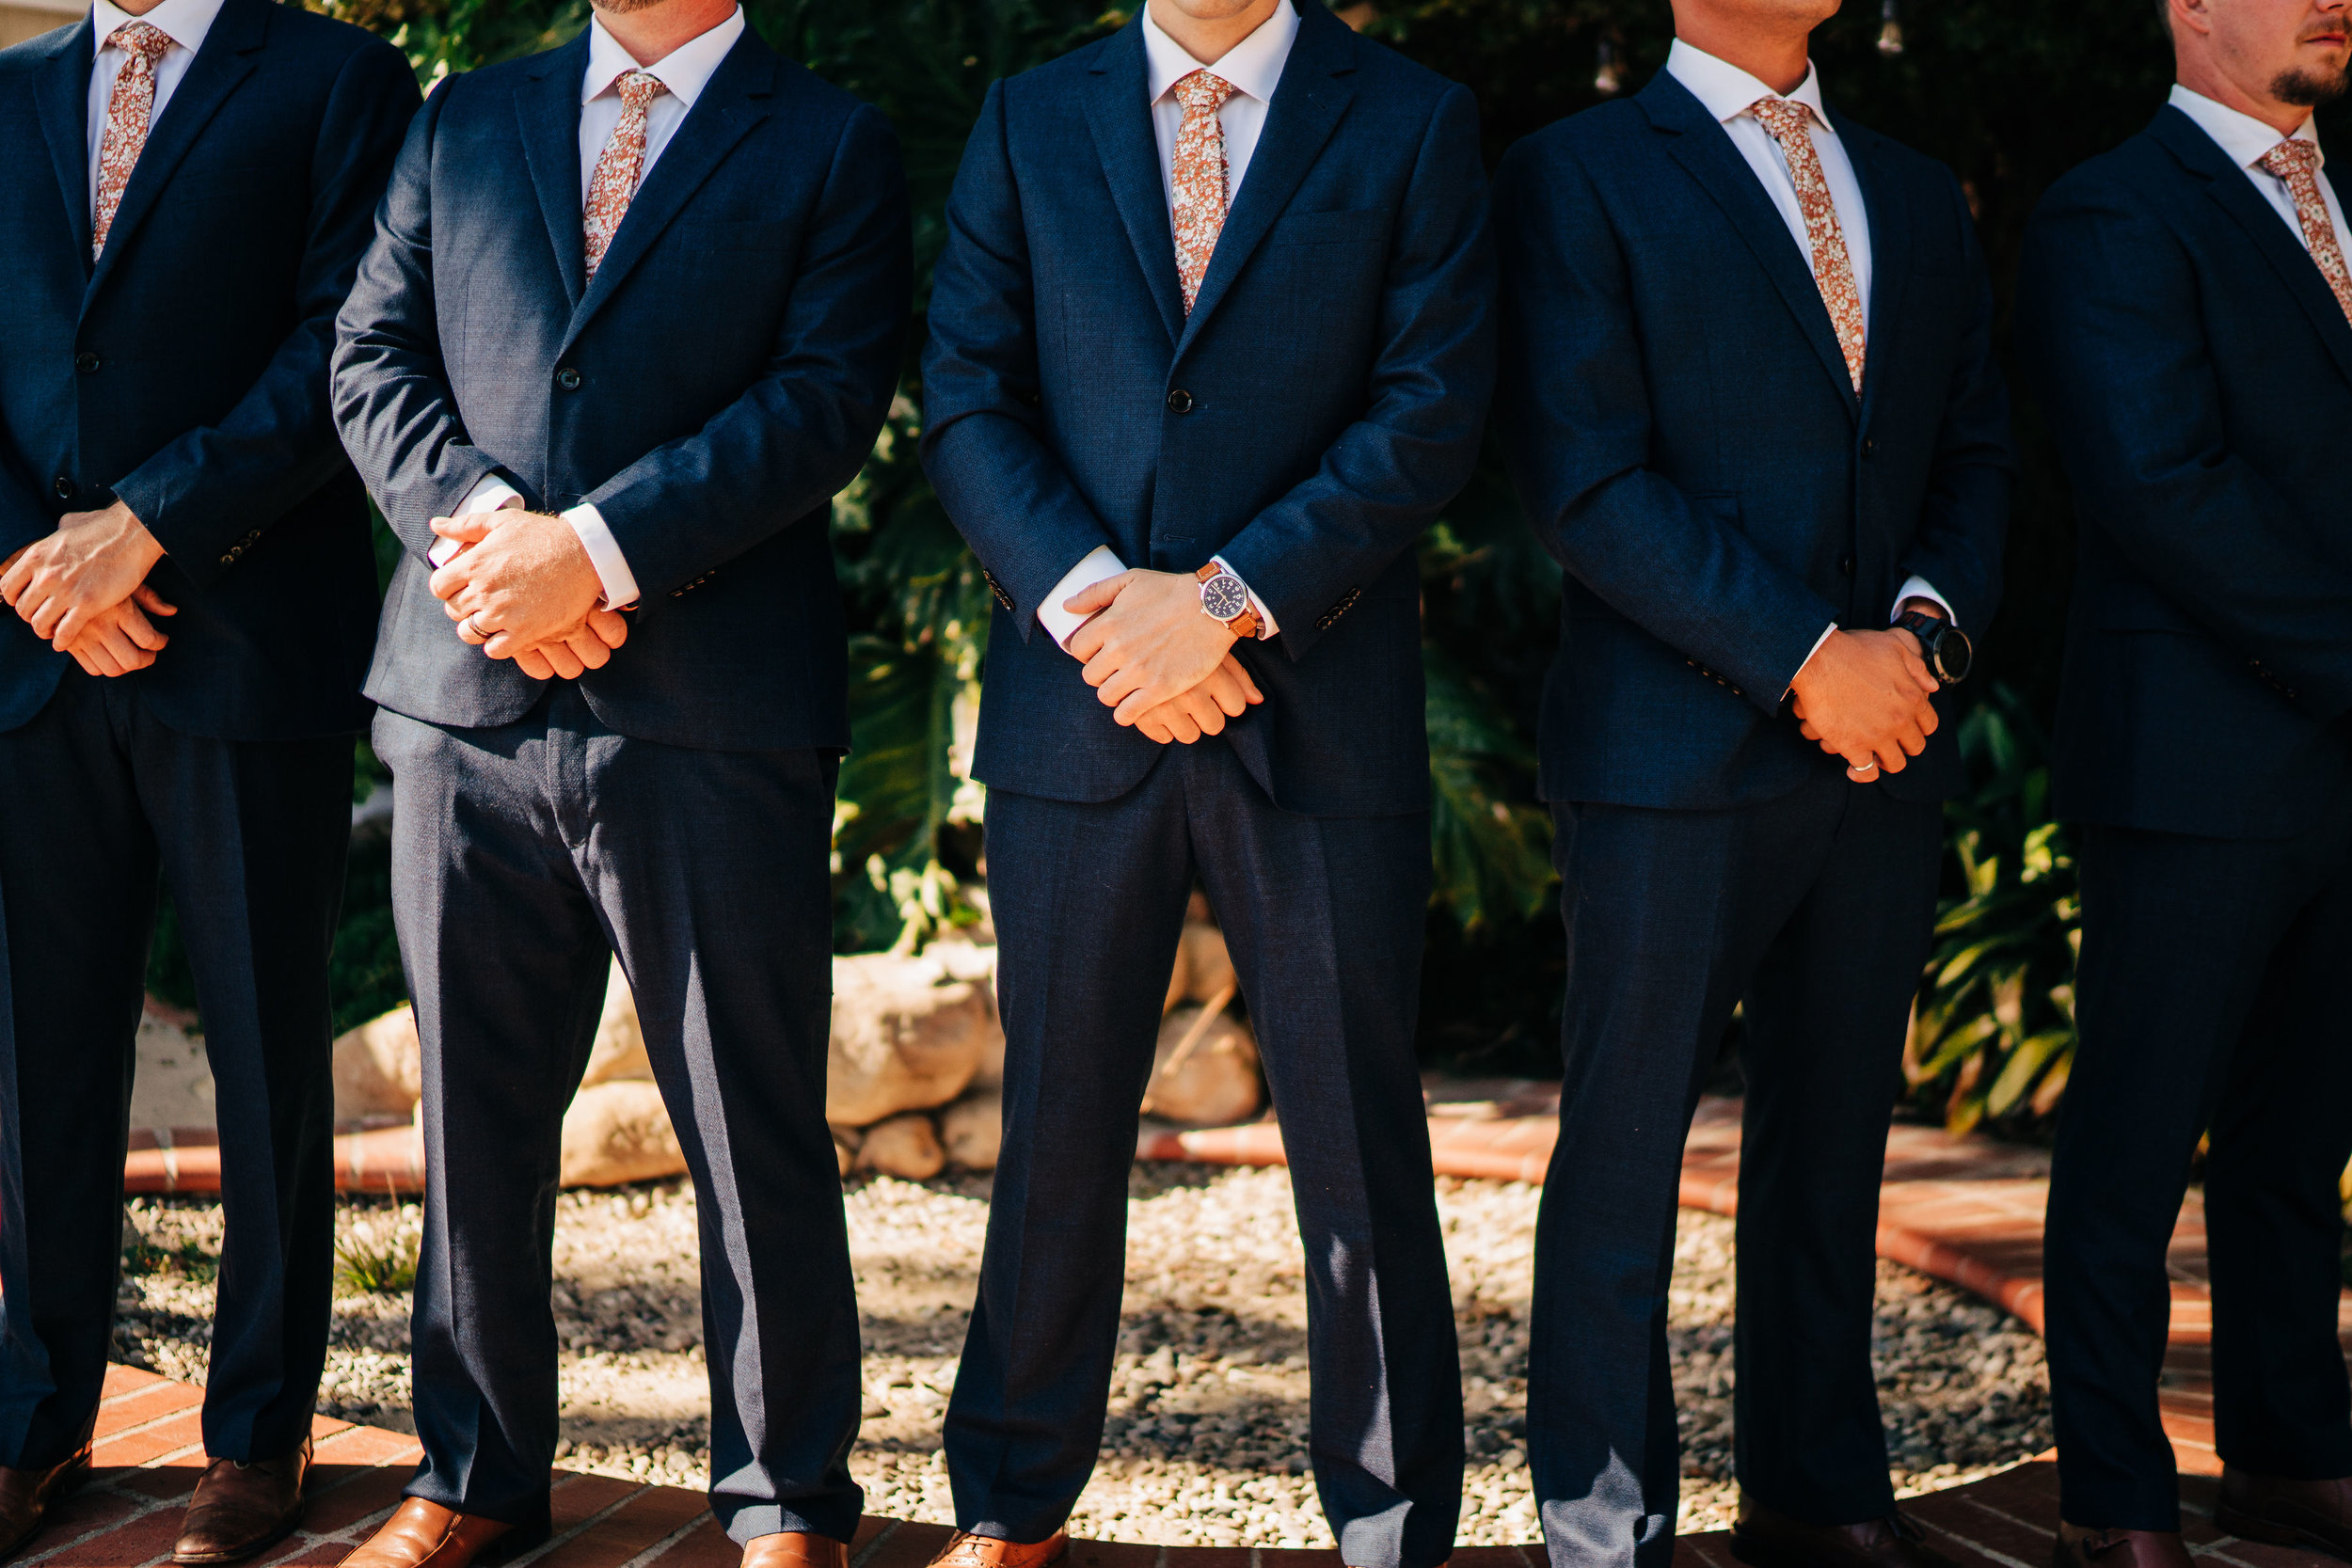 allie-shupe-tyler-wiggins-wedding-santa-barbara 029.jpg